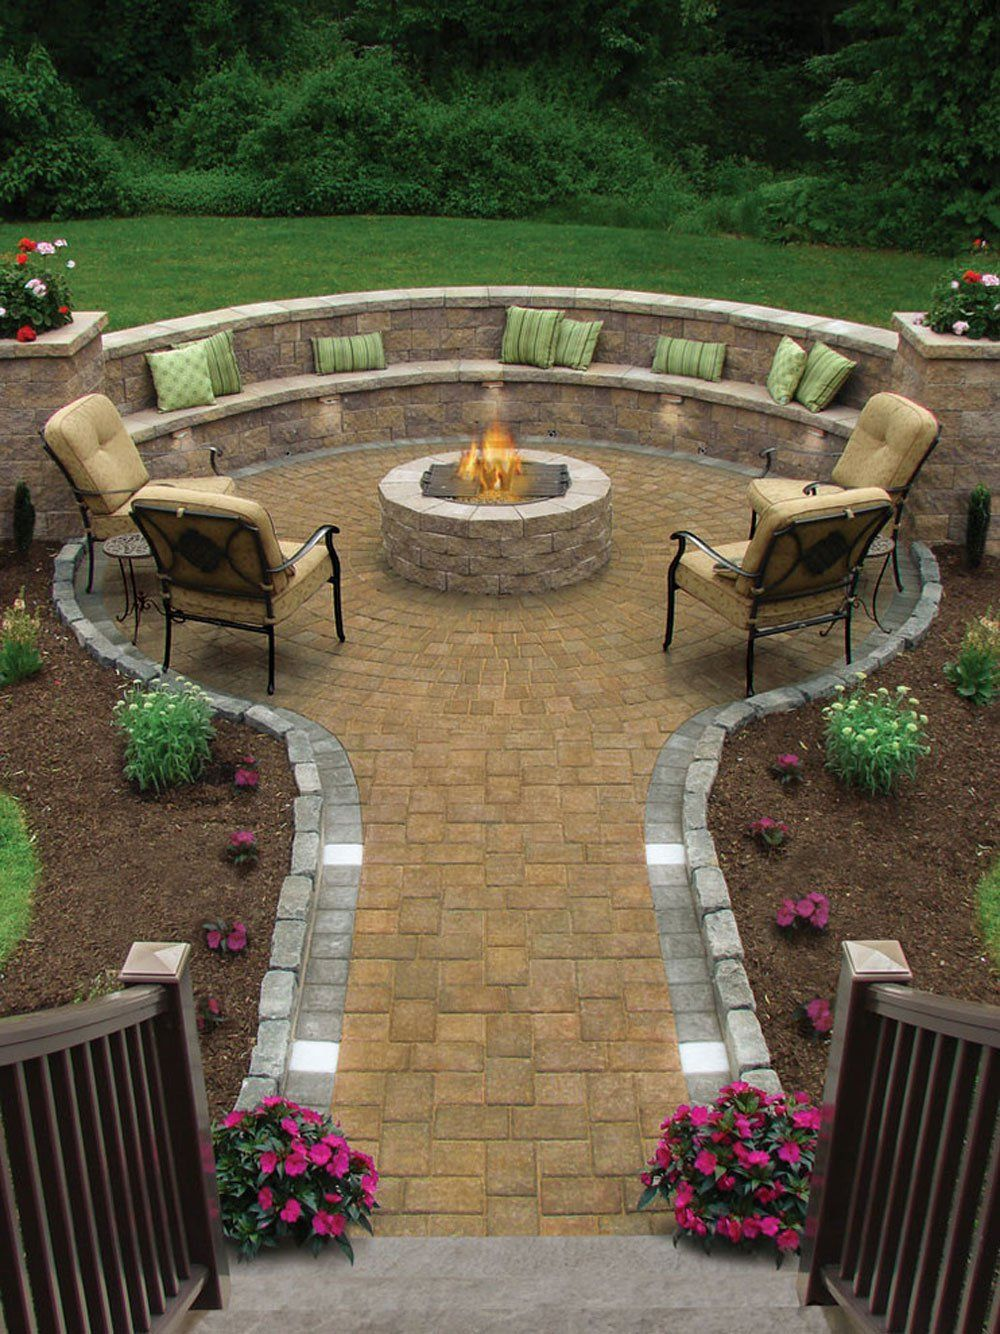 17 of the most amazing seating area around the fire pit ever - Firepit Ideas